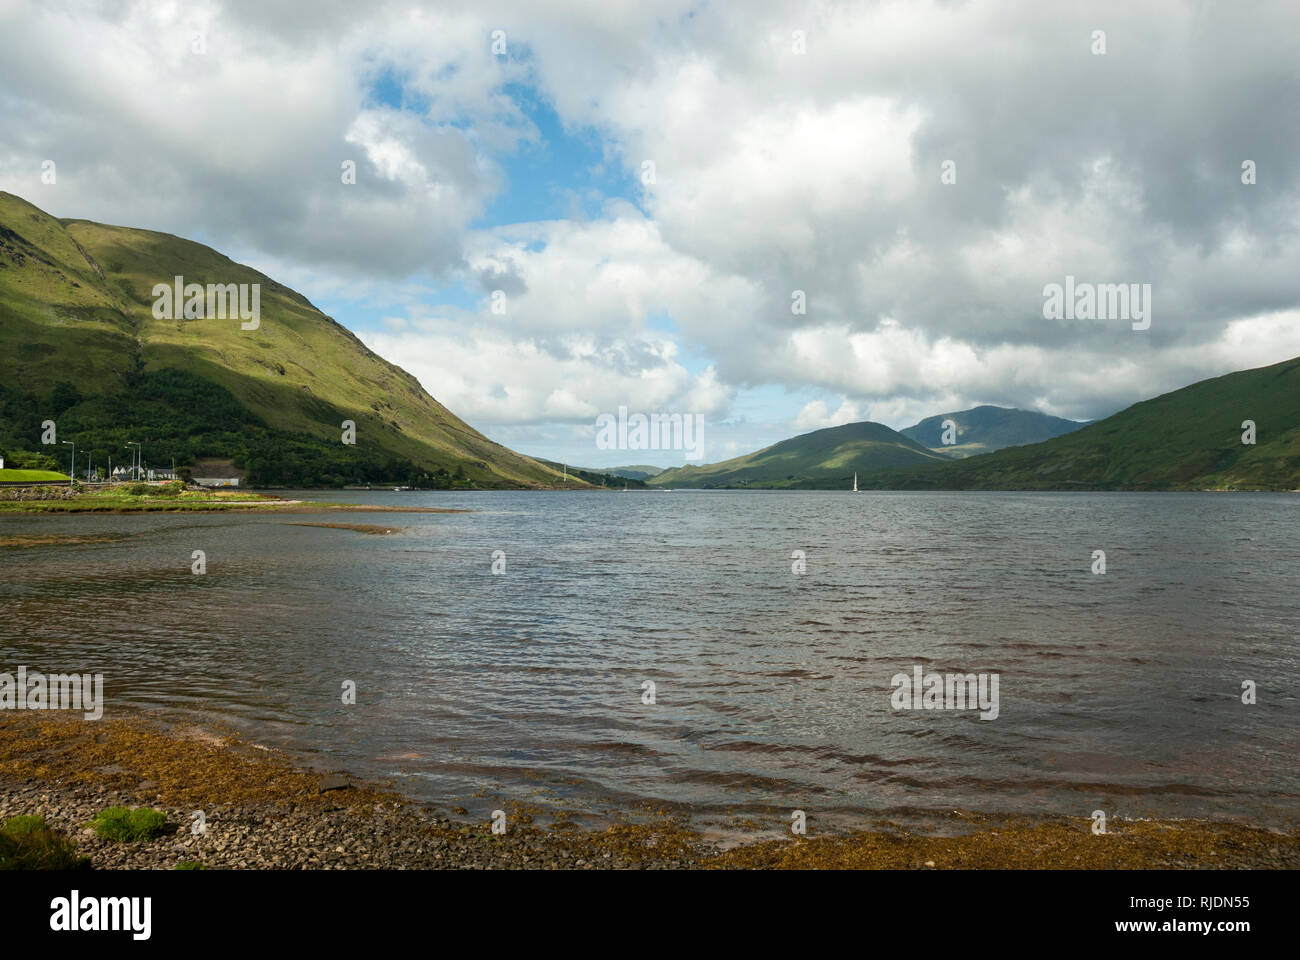 Fin Lough or Bright Lake in Co Mayo, Ireland with the salmon fishing and farming lake in the foreground and the Sheefry hills behind. - Stock Image